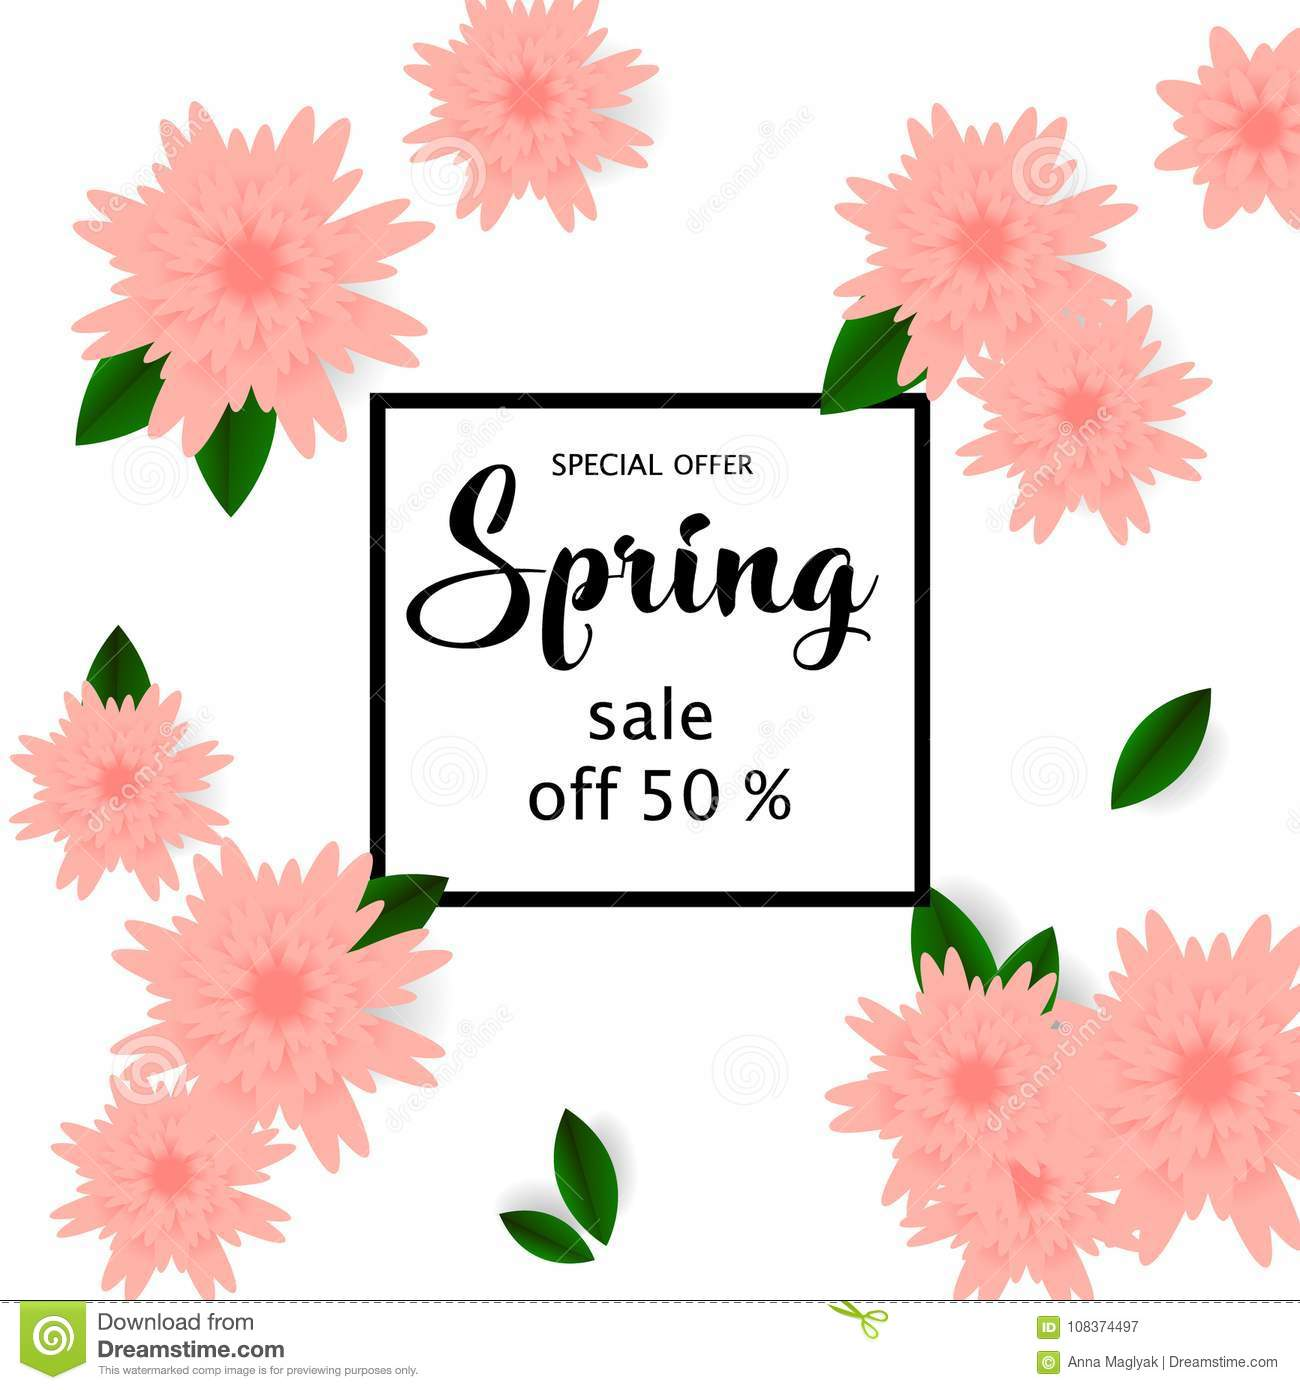 Spring sale banner with paper flowers for online shopping download spring sale banner with paper flowers for online shopping advertising actions magazines and mightylinksfo